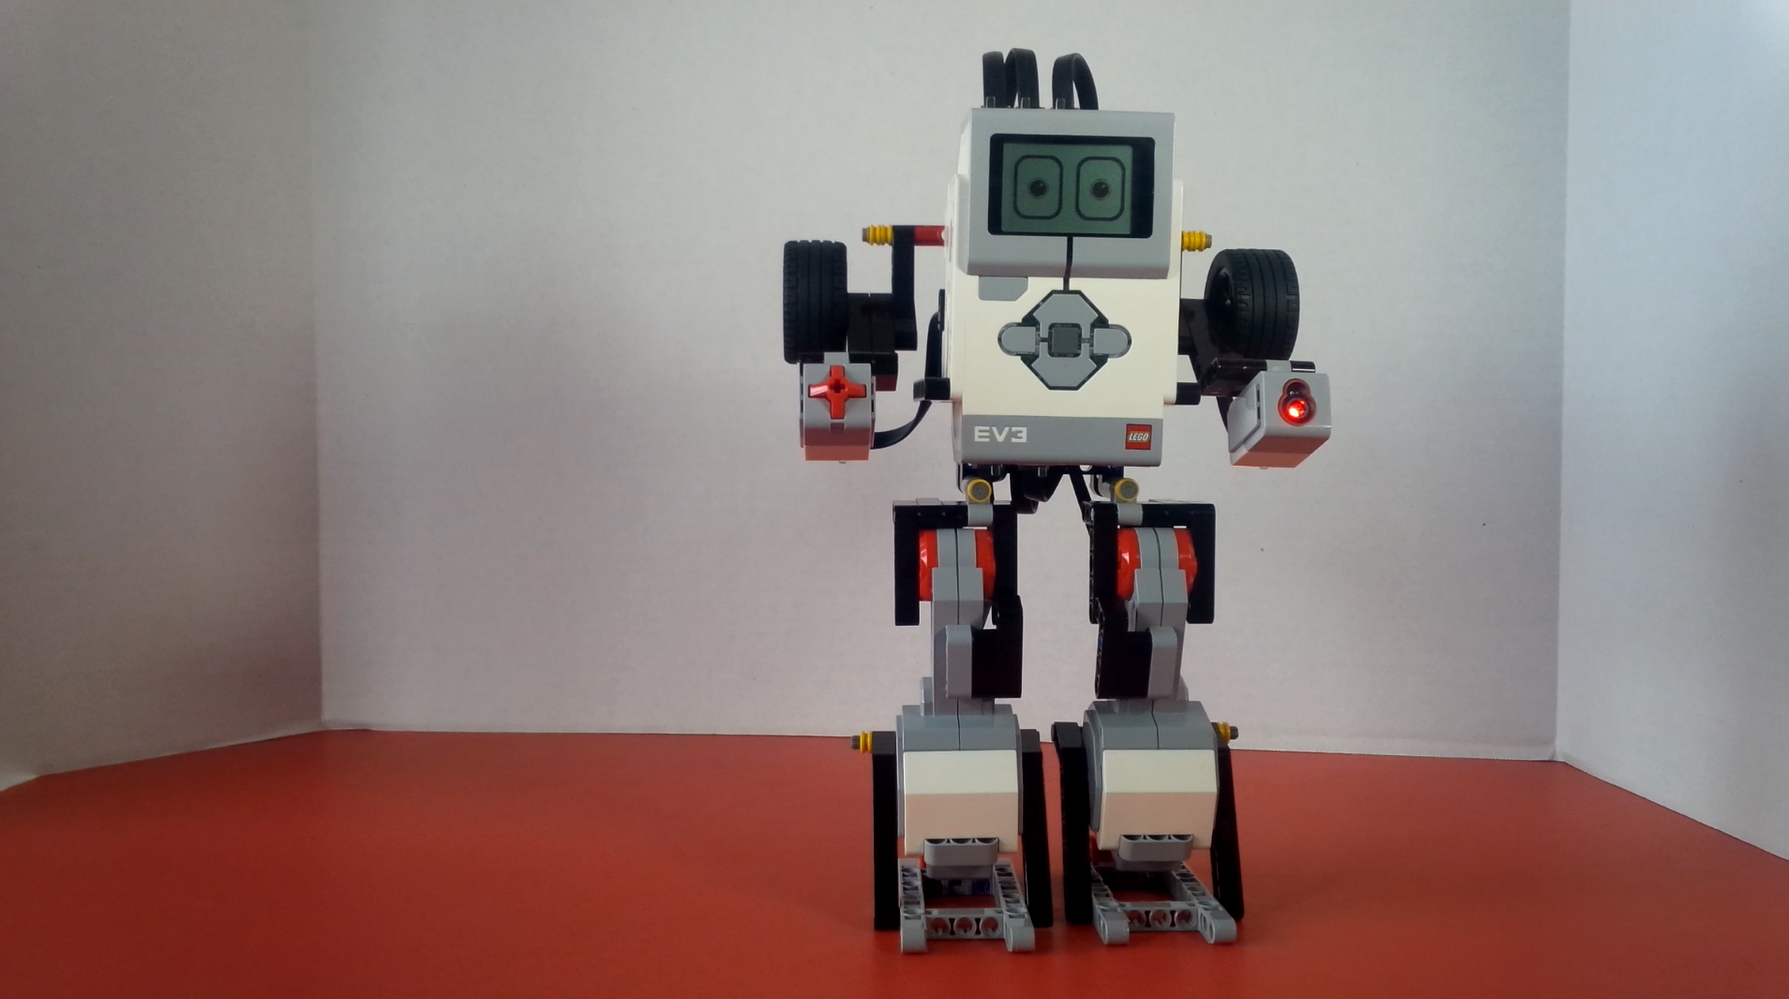 mindstorm projects This is a fun project using a lego mindstorms ev3 set along with a few household products: the lego mindstorms music box (updated 2/21/17 – added full build instructions along with a video showing how the mindstorms music box is all put together.